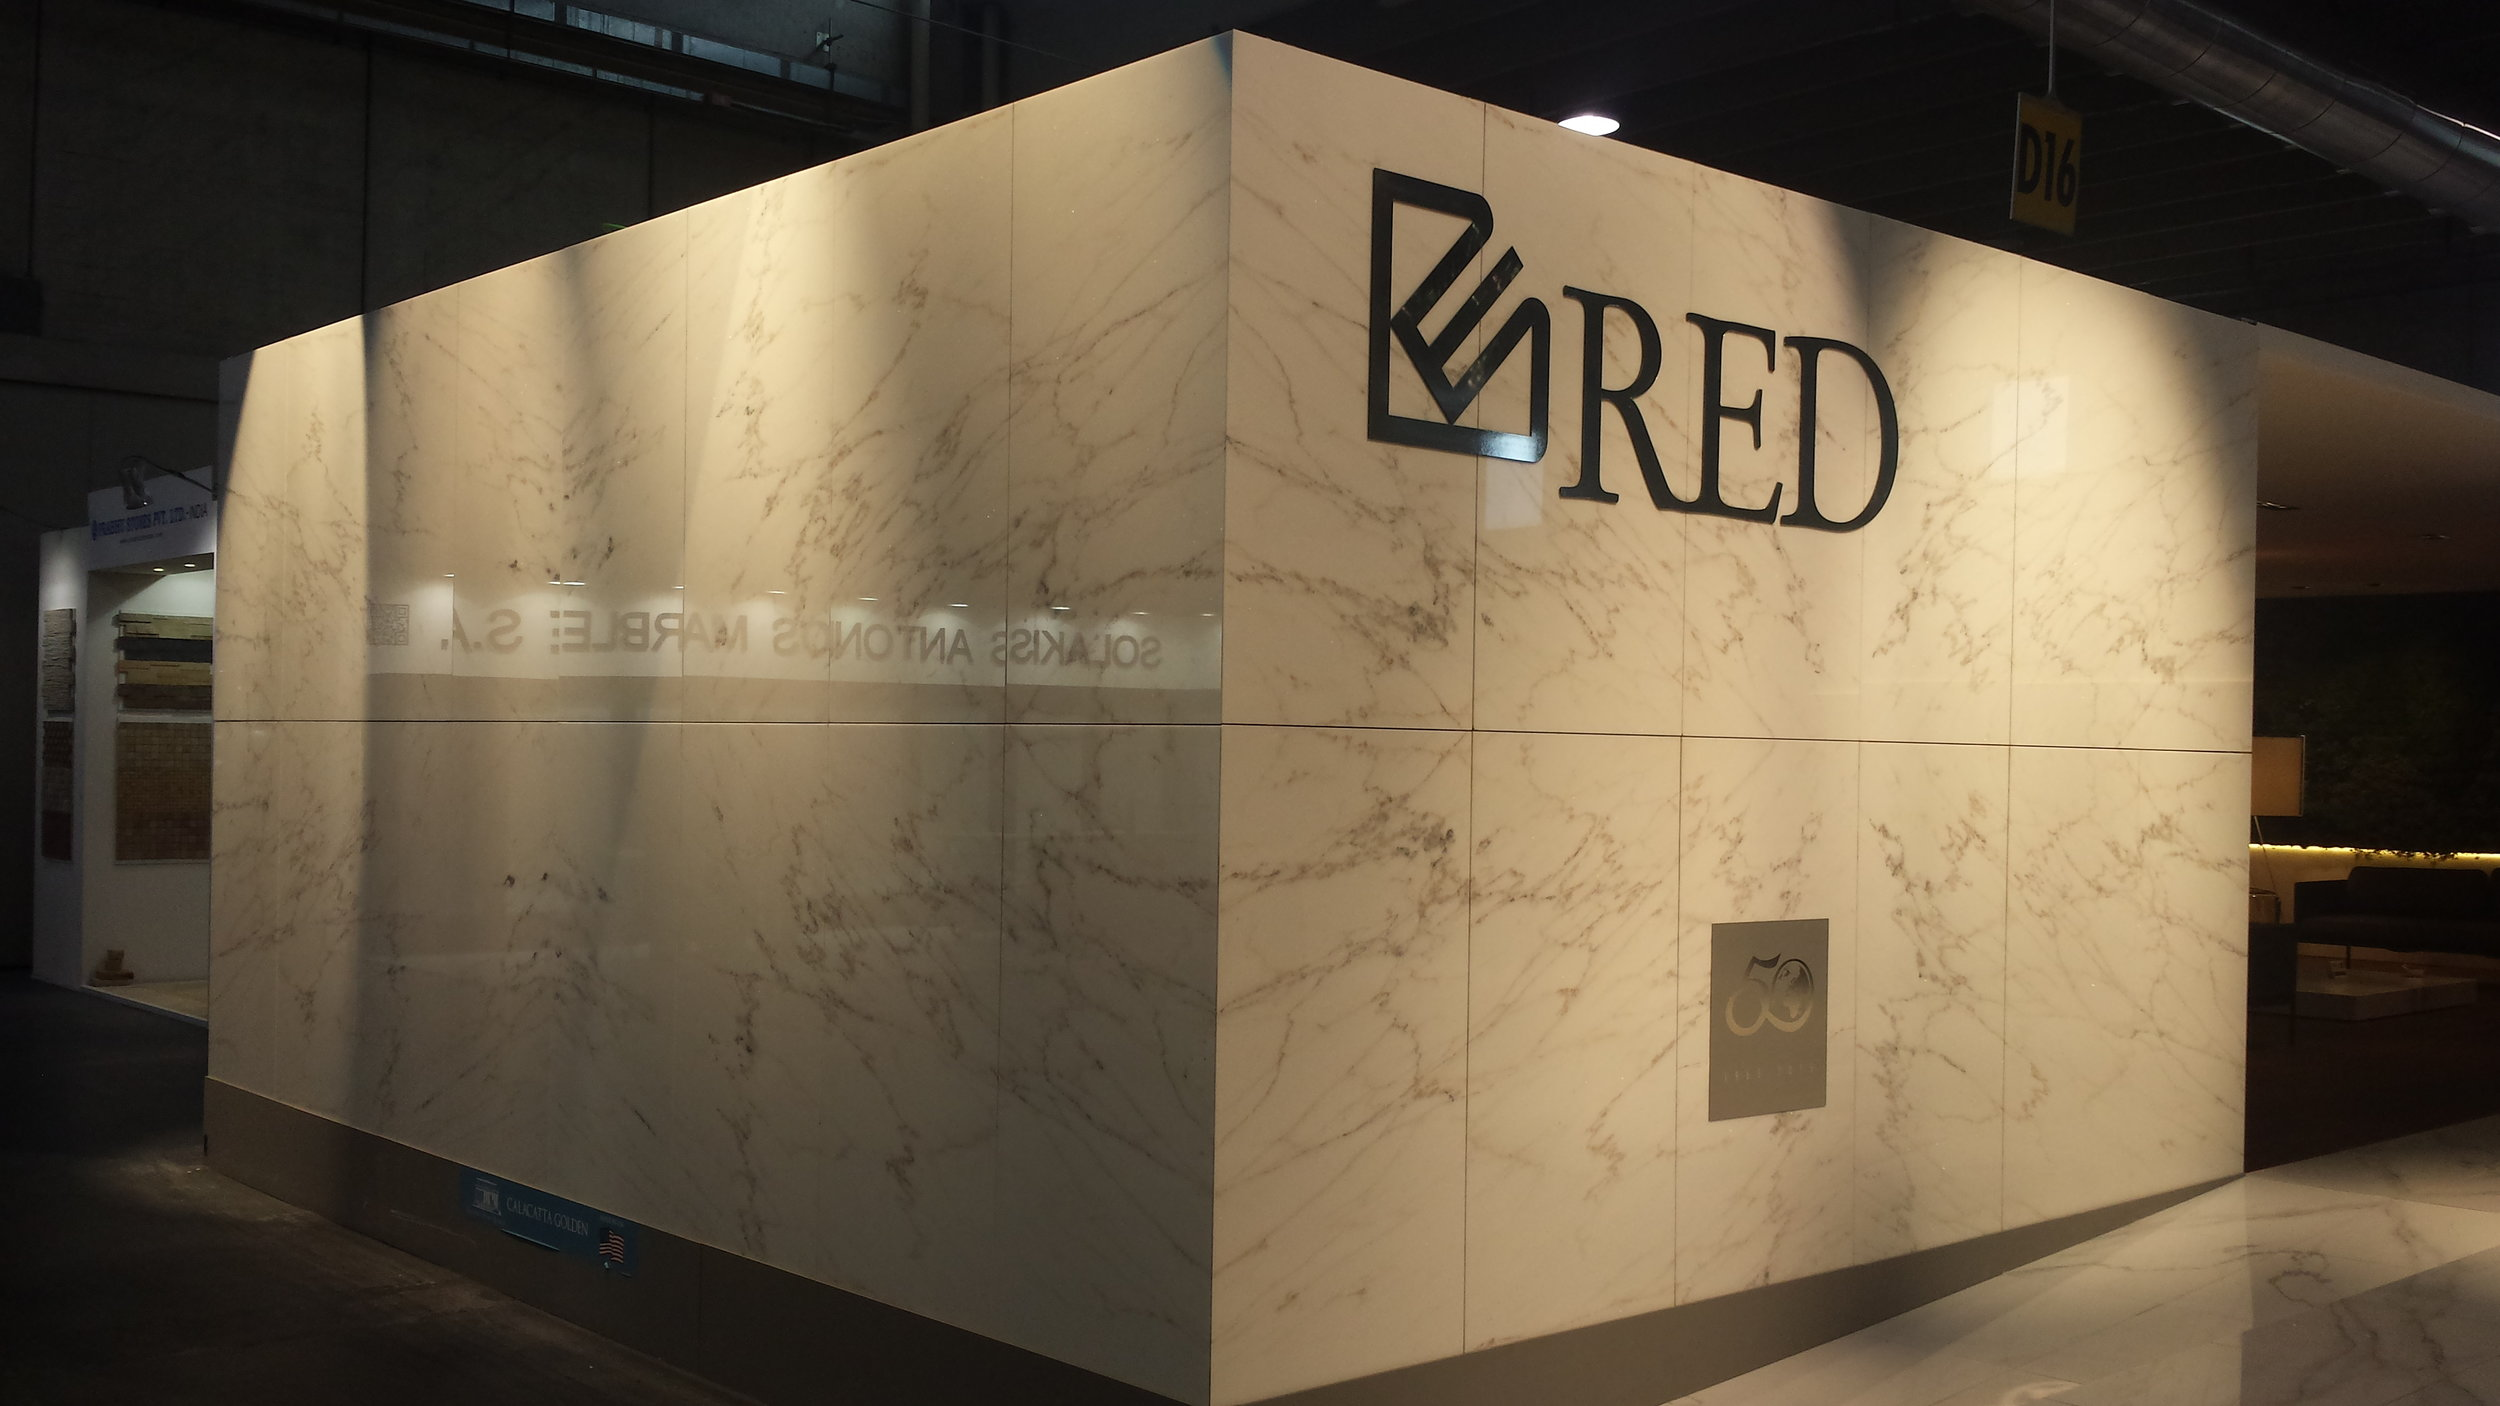 RED GRANIT EXHIBITION BOTH MARMOMACC 2015  CALACATTA GOLDEN